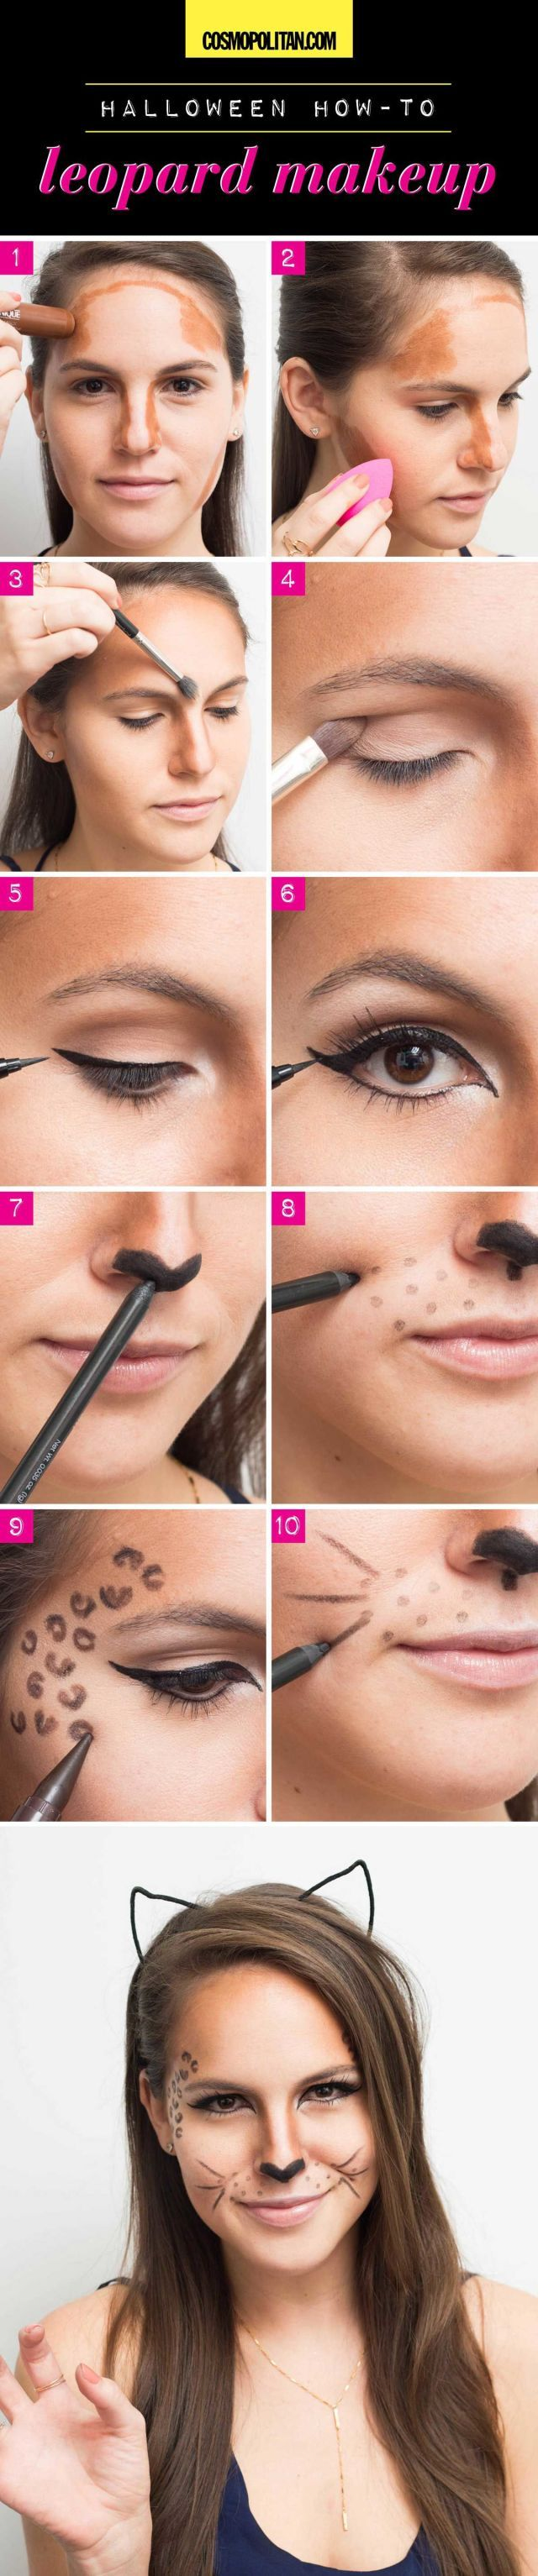 Halloween How-to: Leopard Makeup